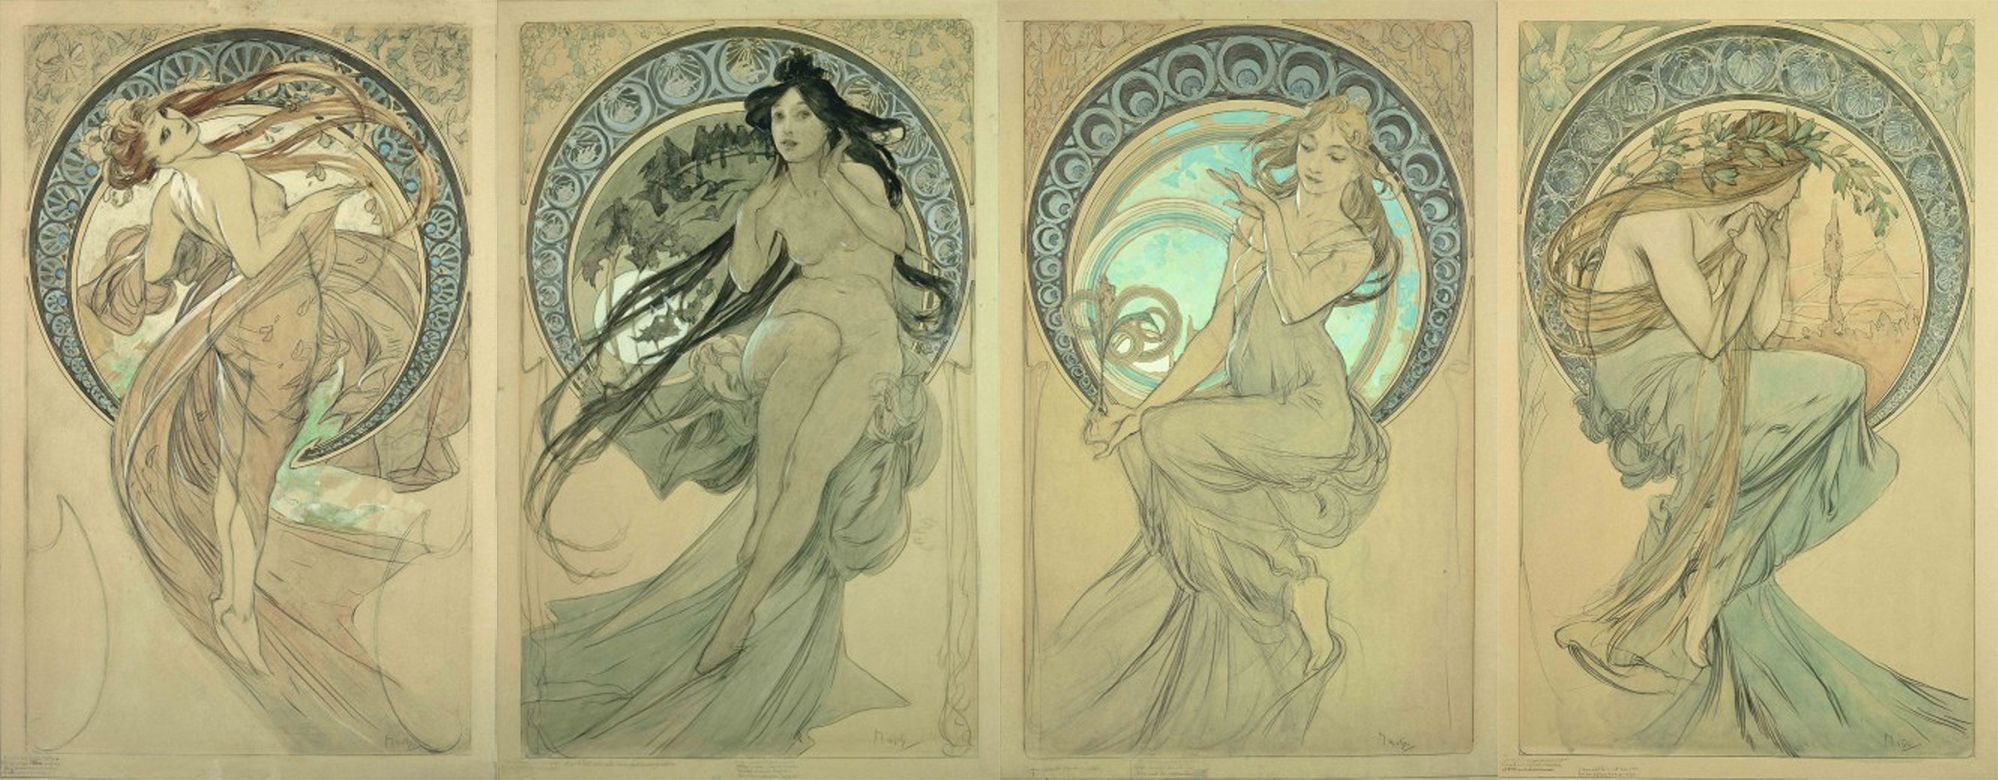 Alphonse Mucha Study For The Arts Dance Music Painting Poetry